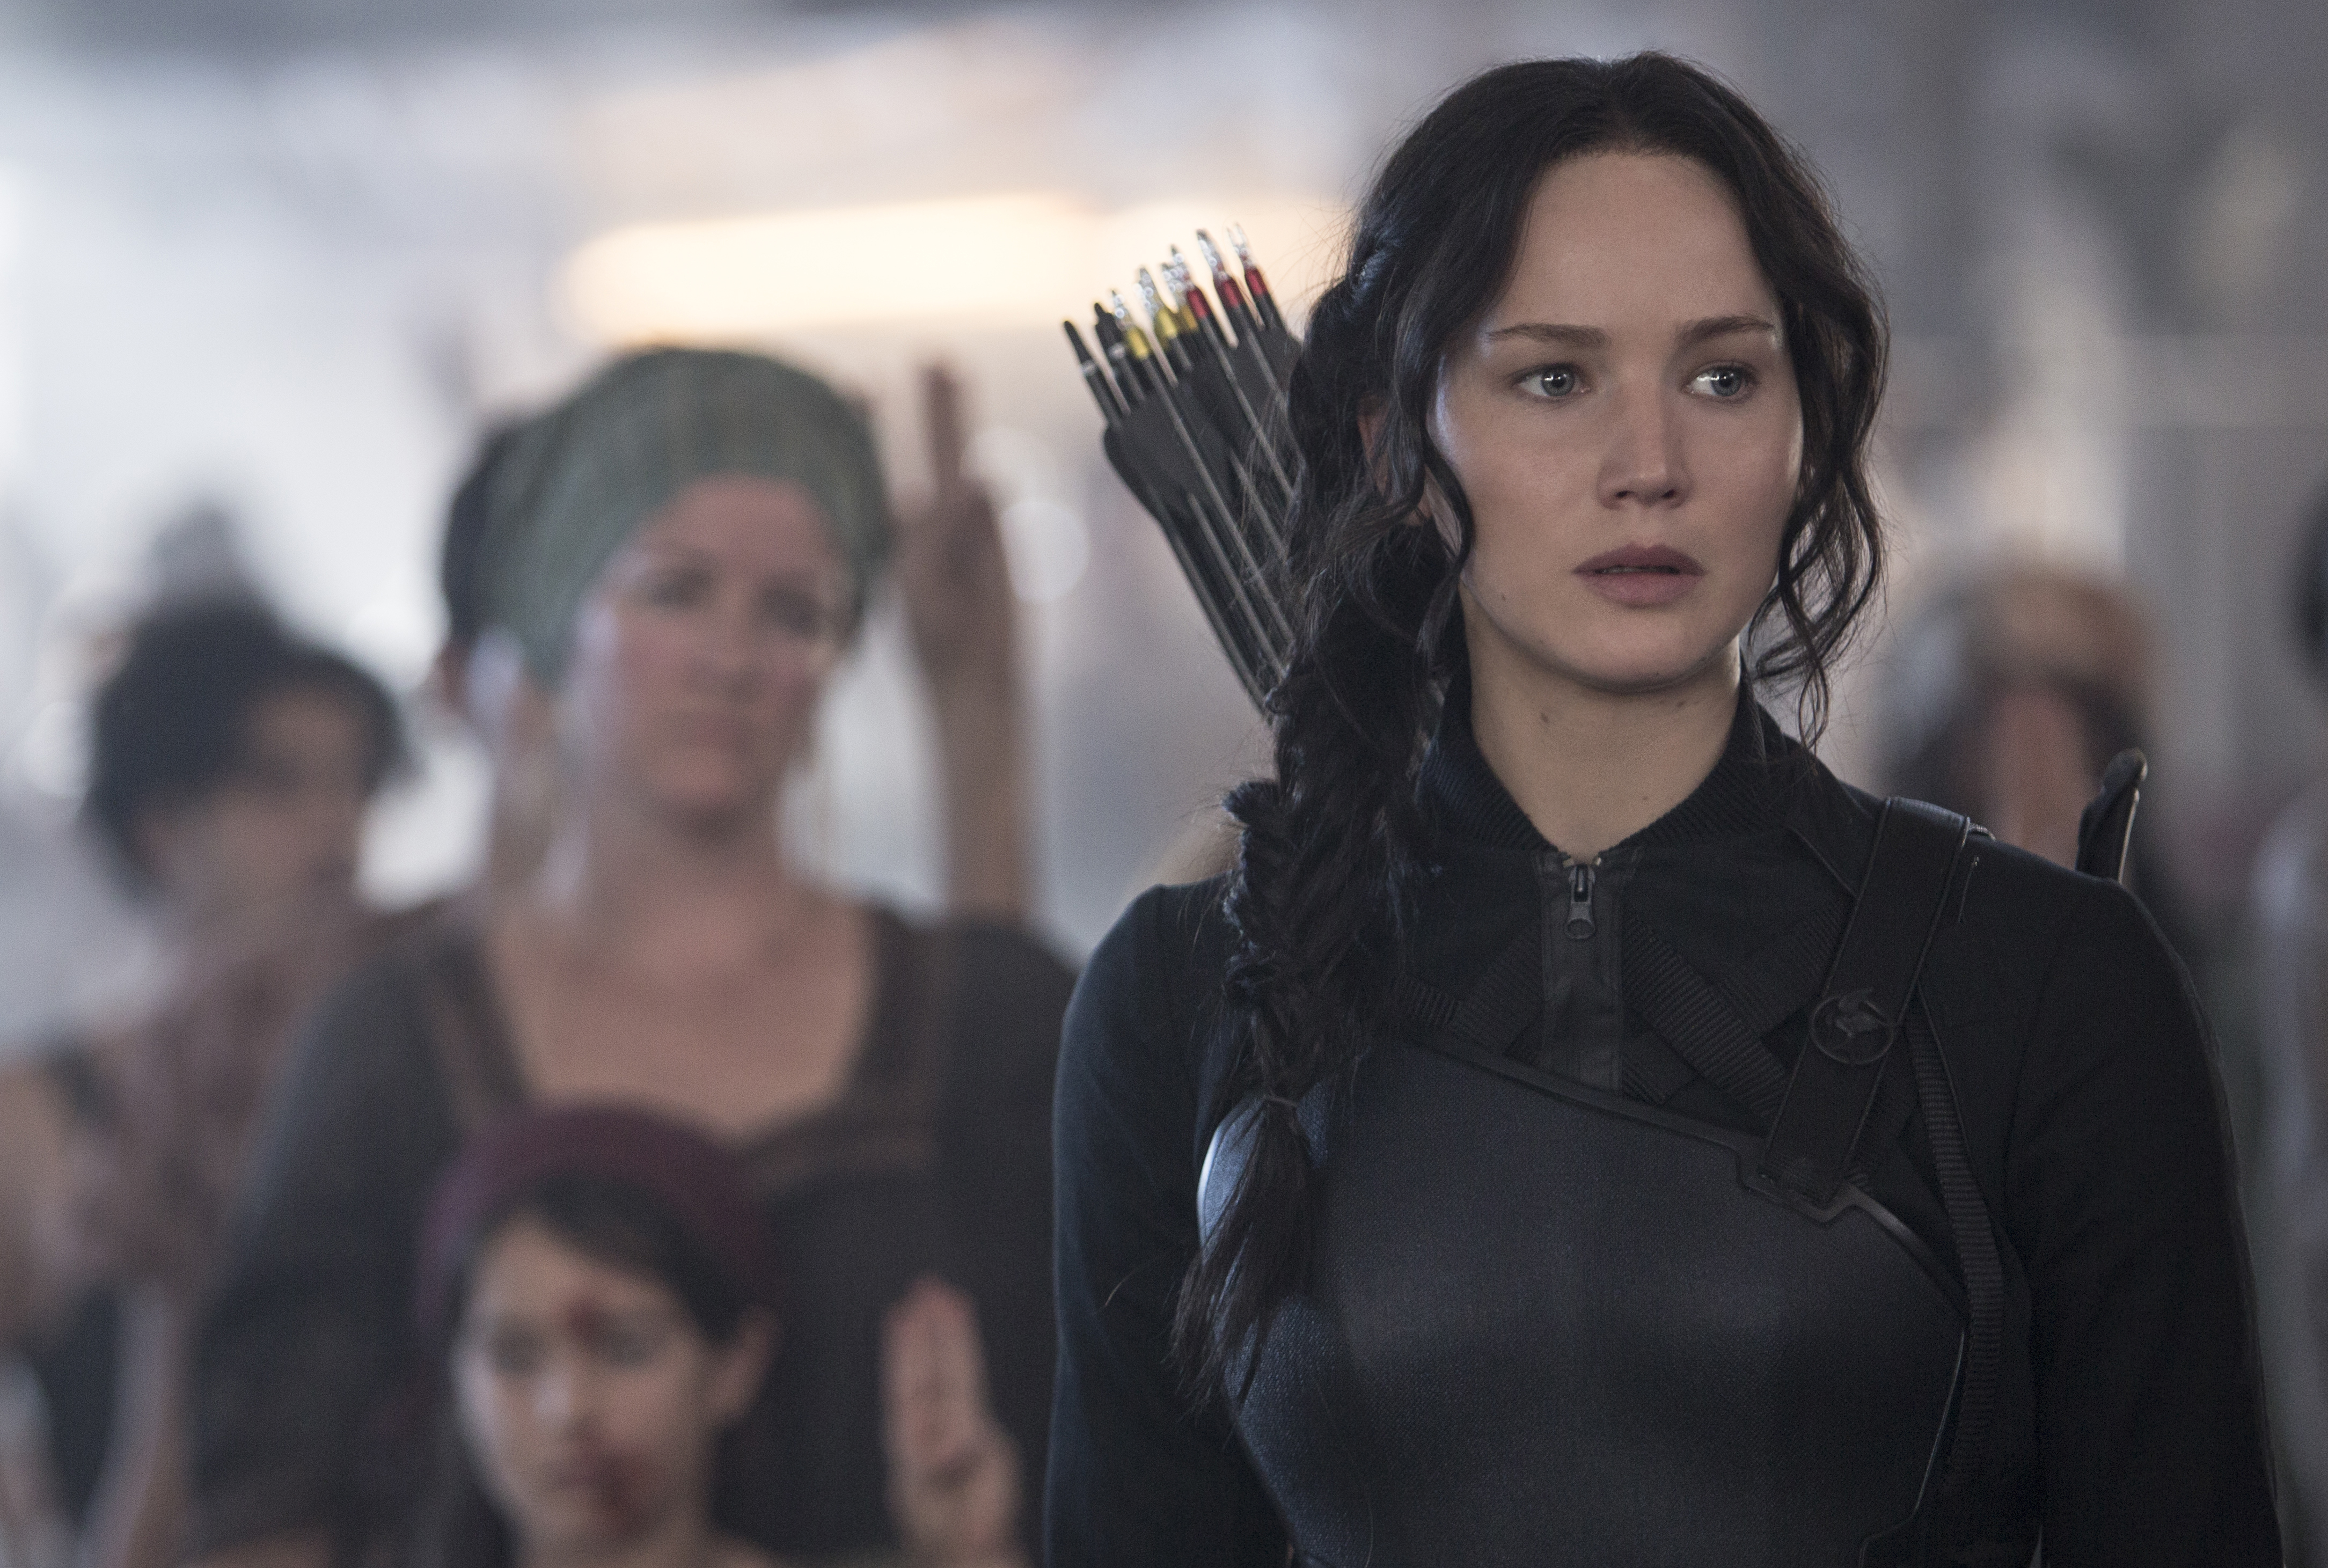 Photo Credit: Murray Close Jennifer Lawrence stars as 'Katniss Everdeen' in THE HUNGER GAMES: MOCKINGJAY – PART 1.